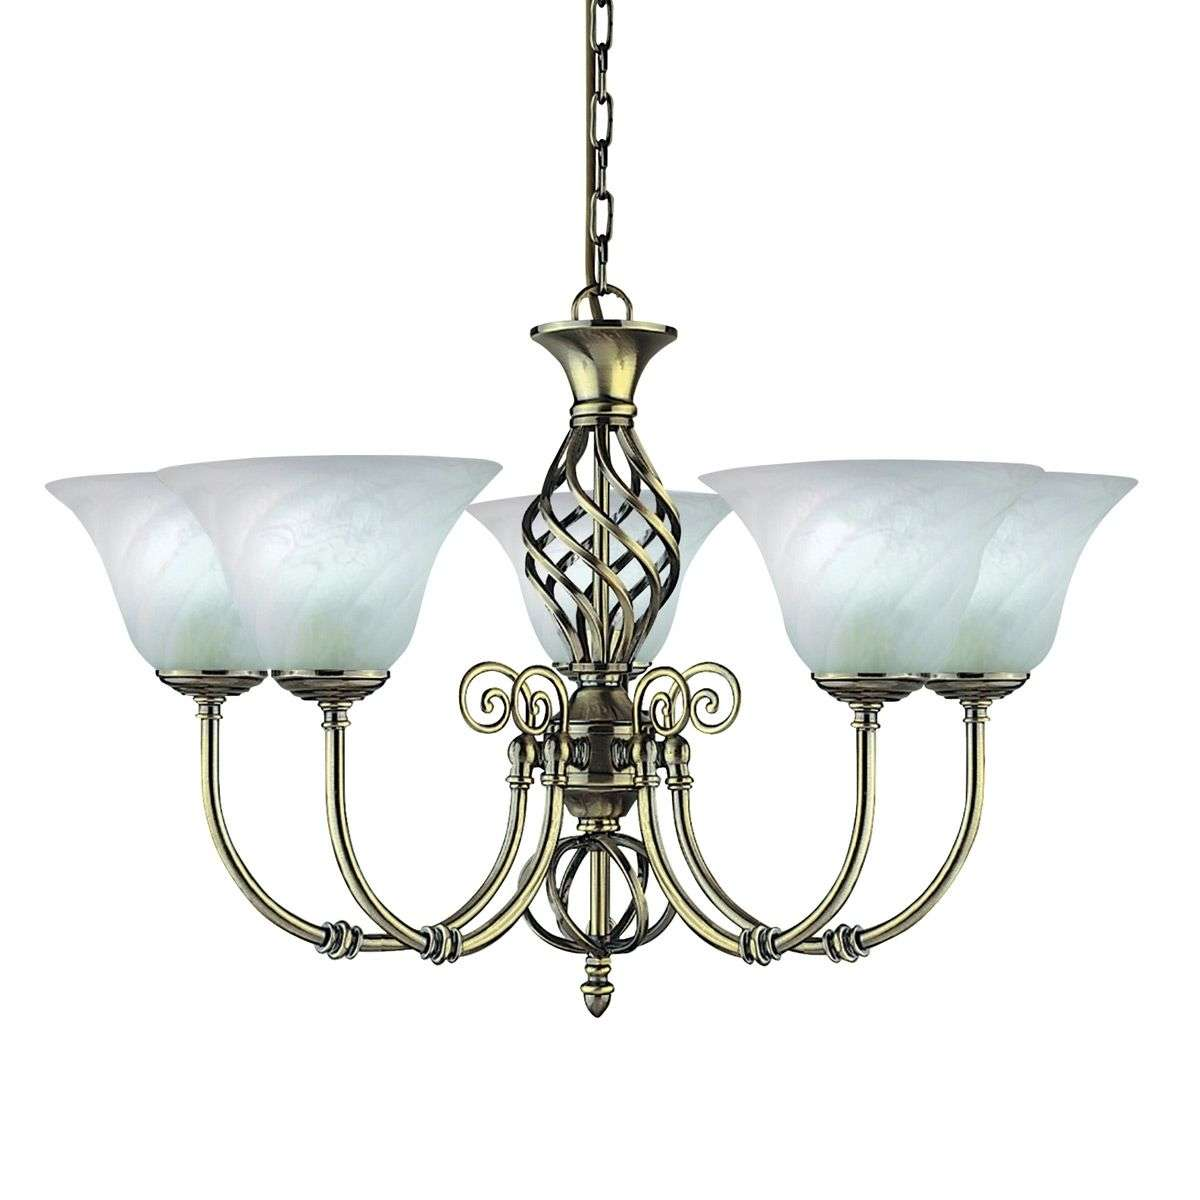 Cameroon Colonial Style Chandelier 5 Light 8570370 31